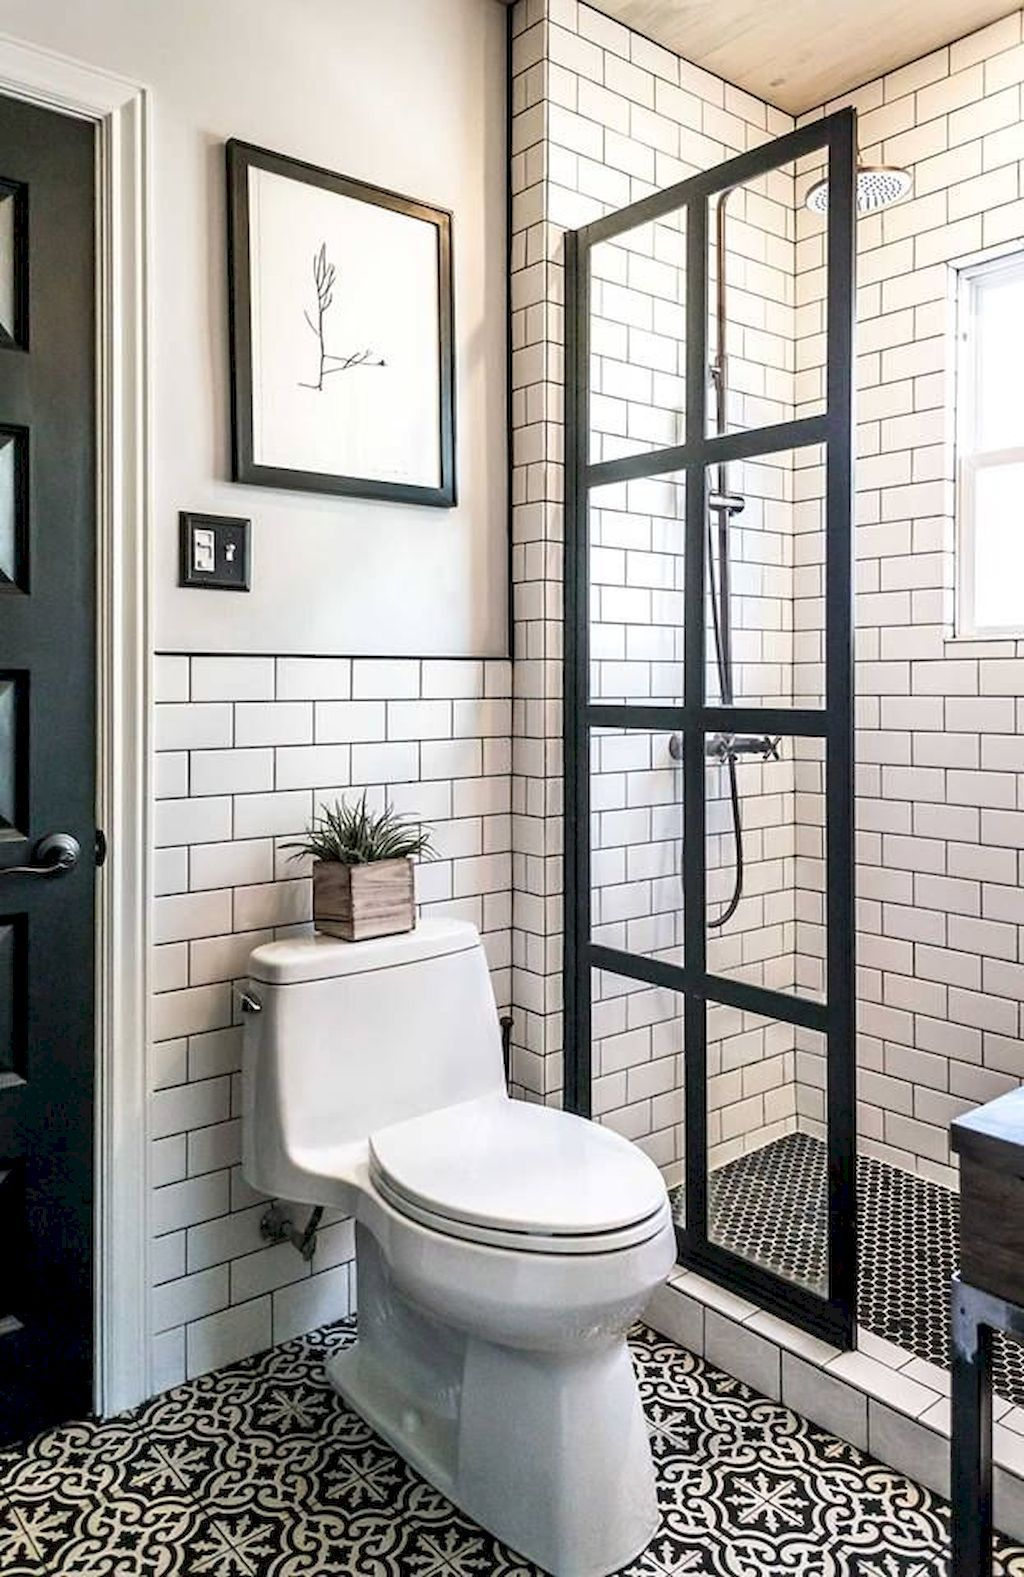 111 small bathroom remodel on a budget for first apartment ideas ...